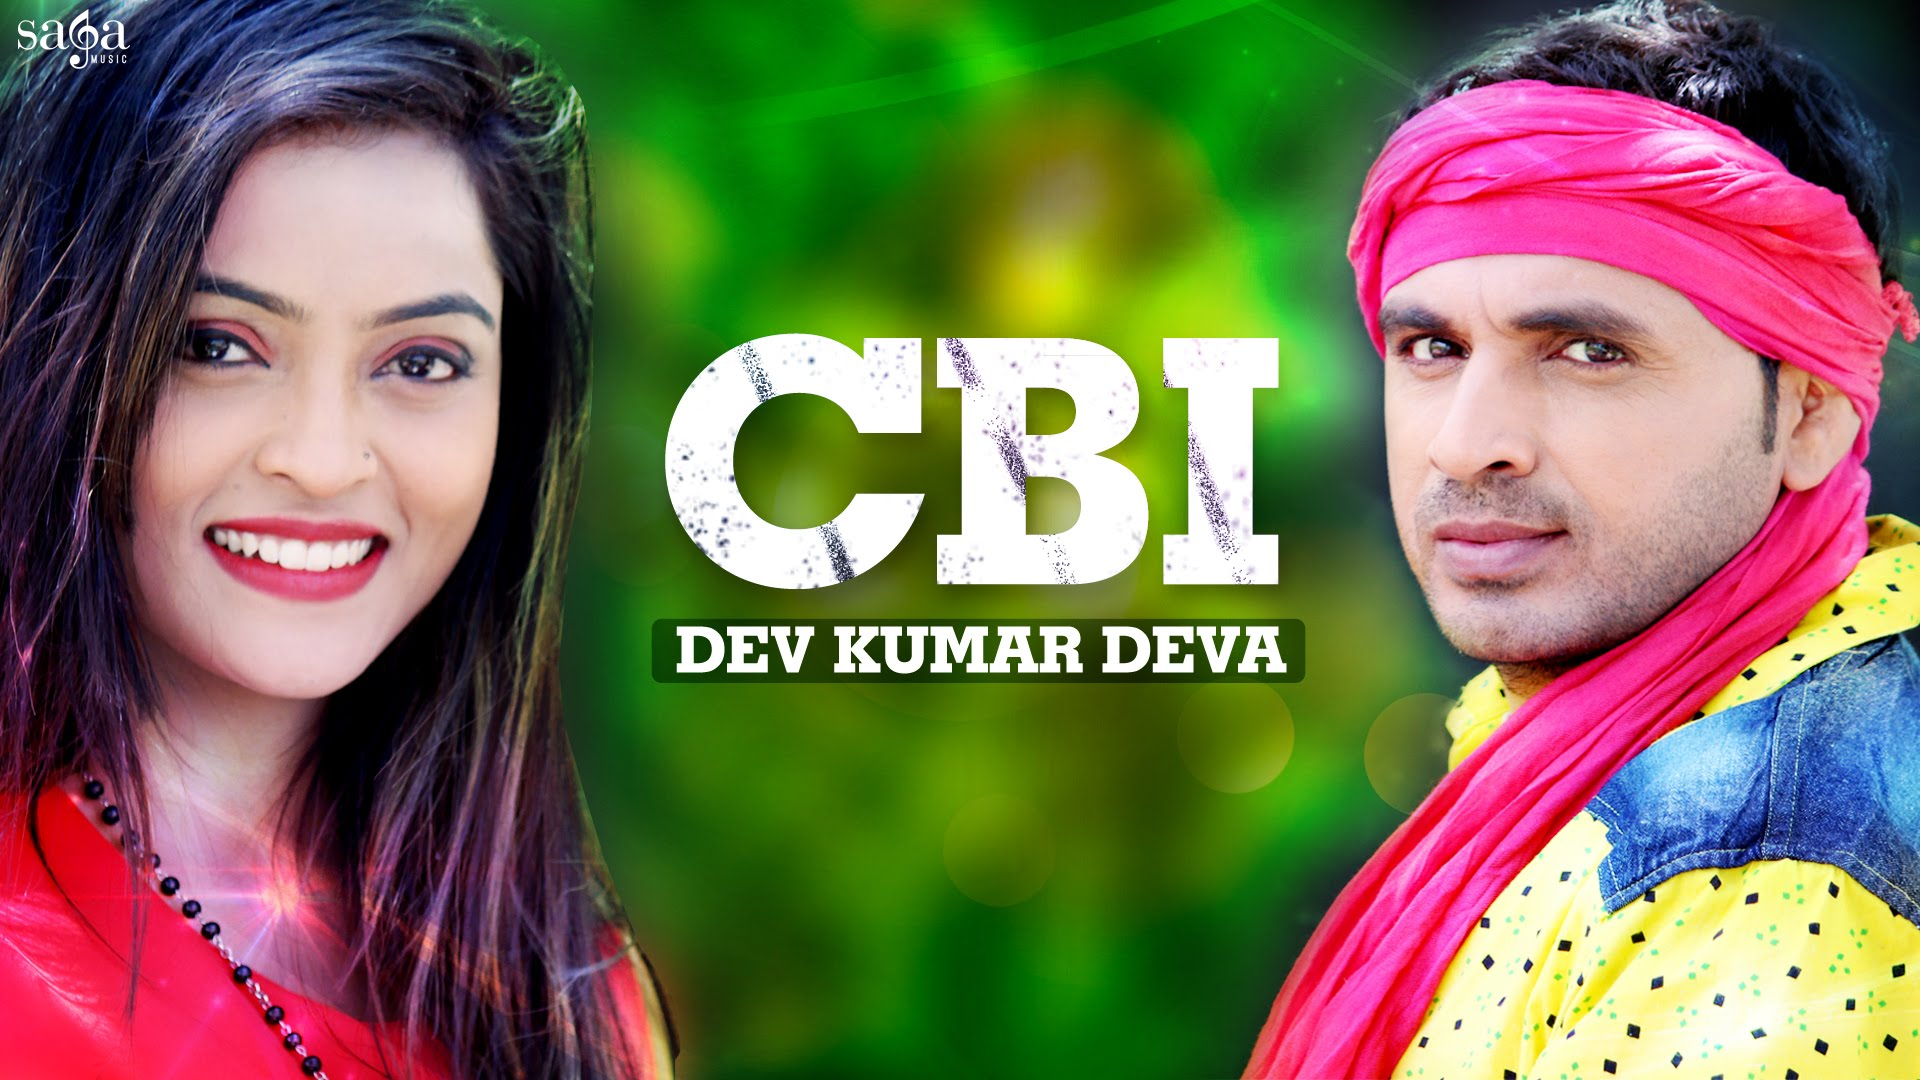 CBI Song By Dev Kumar Deva